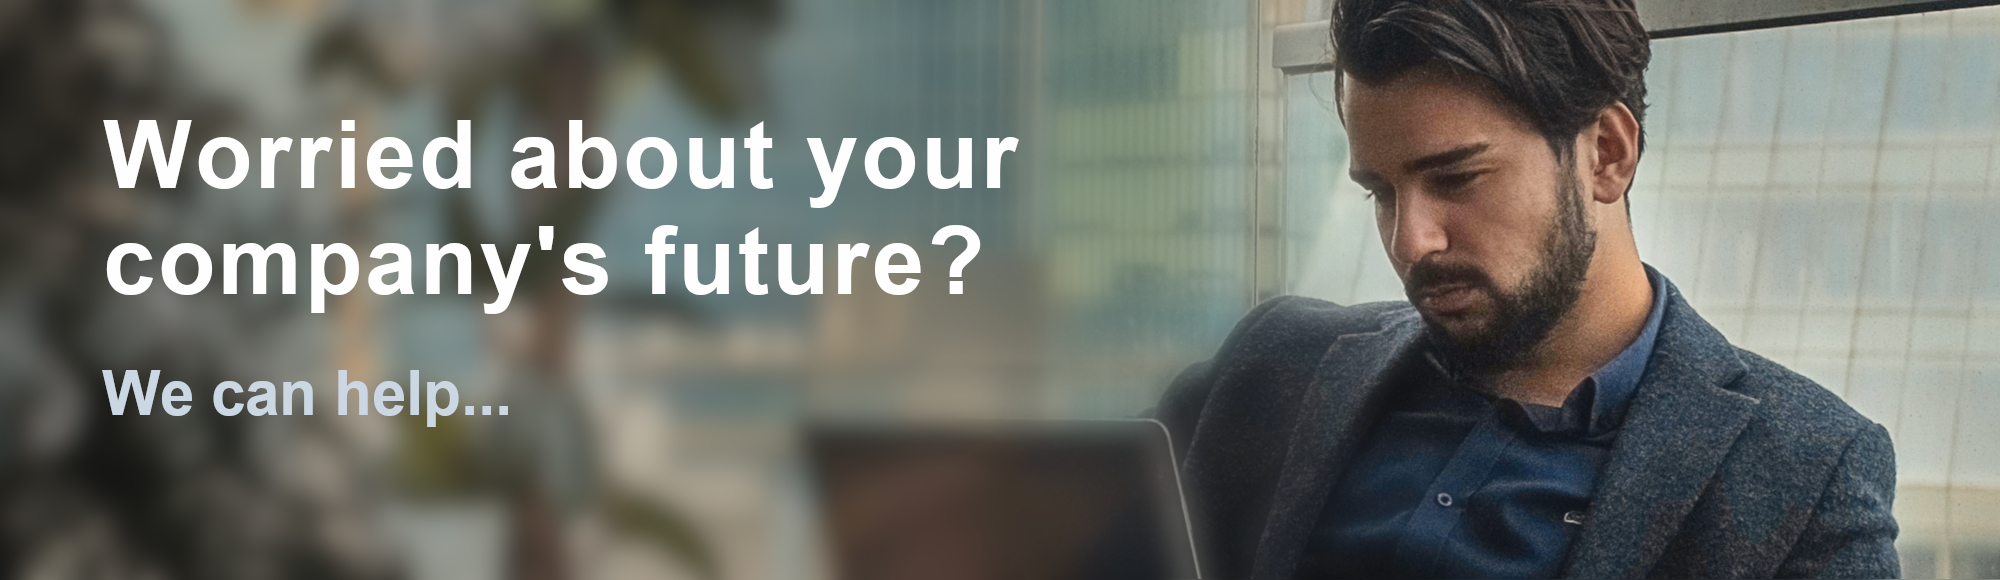 worried about your company's future